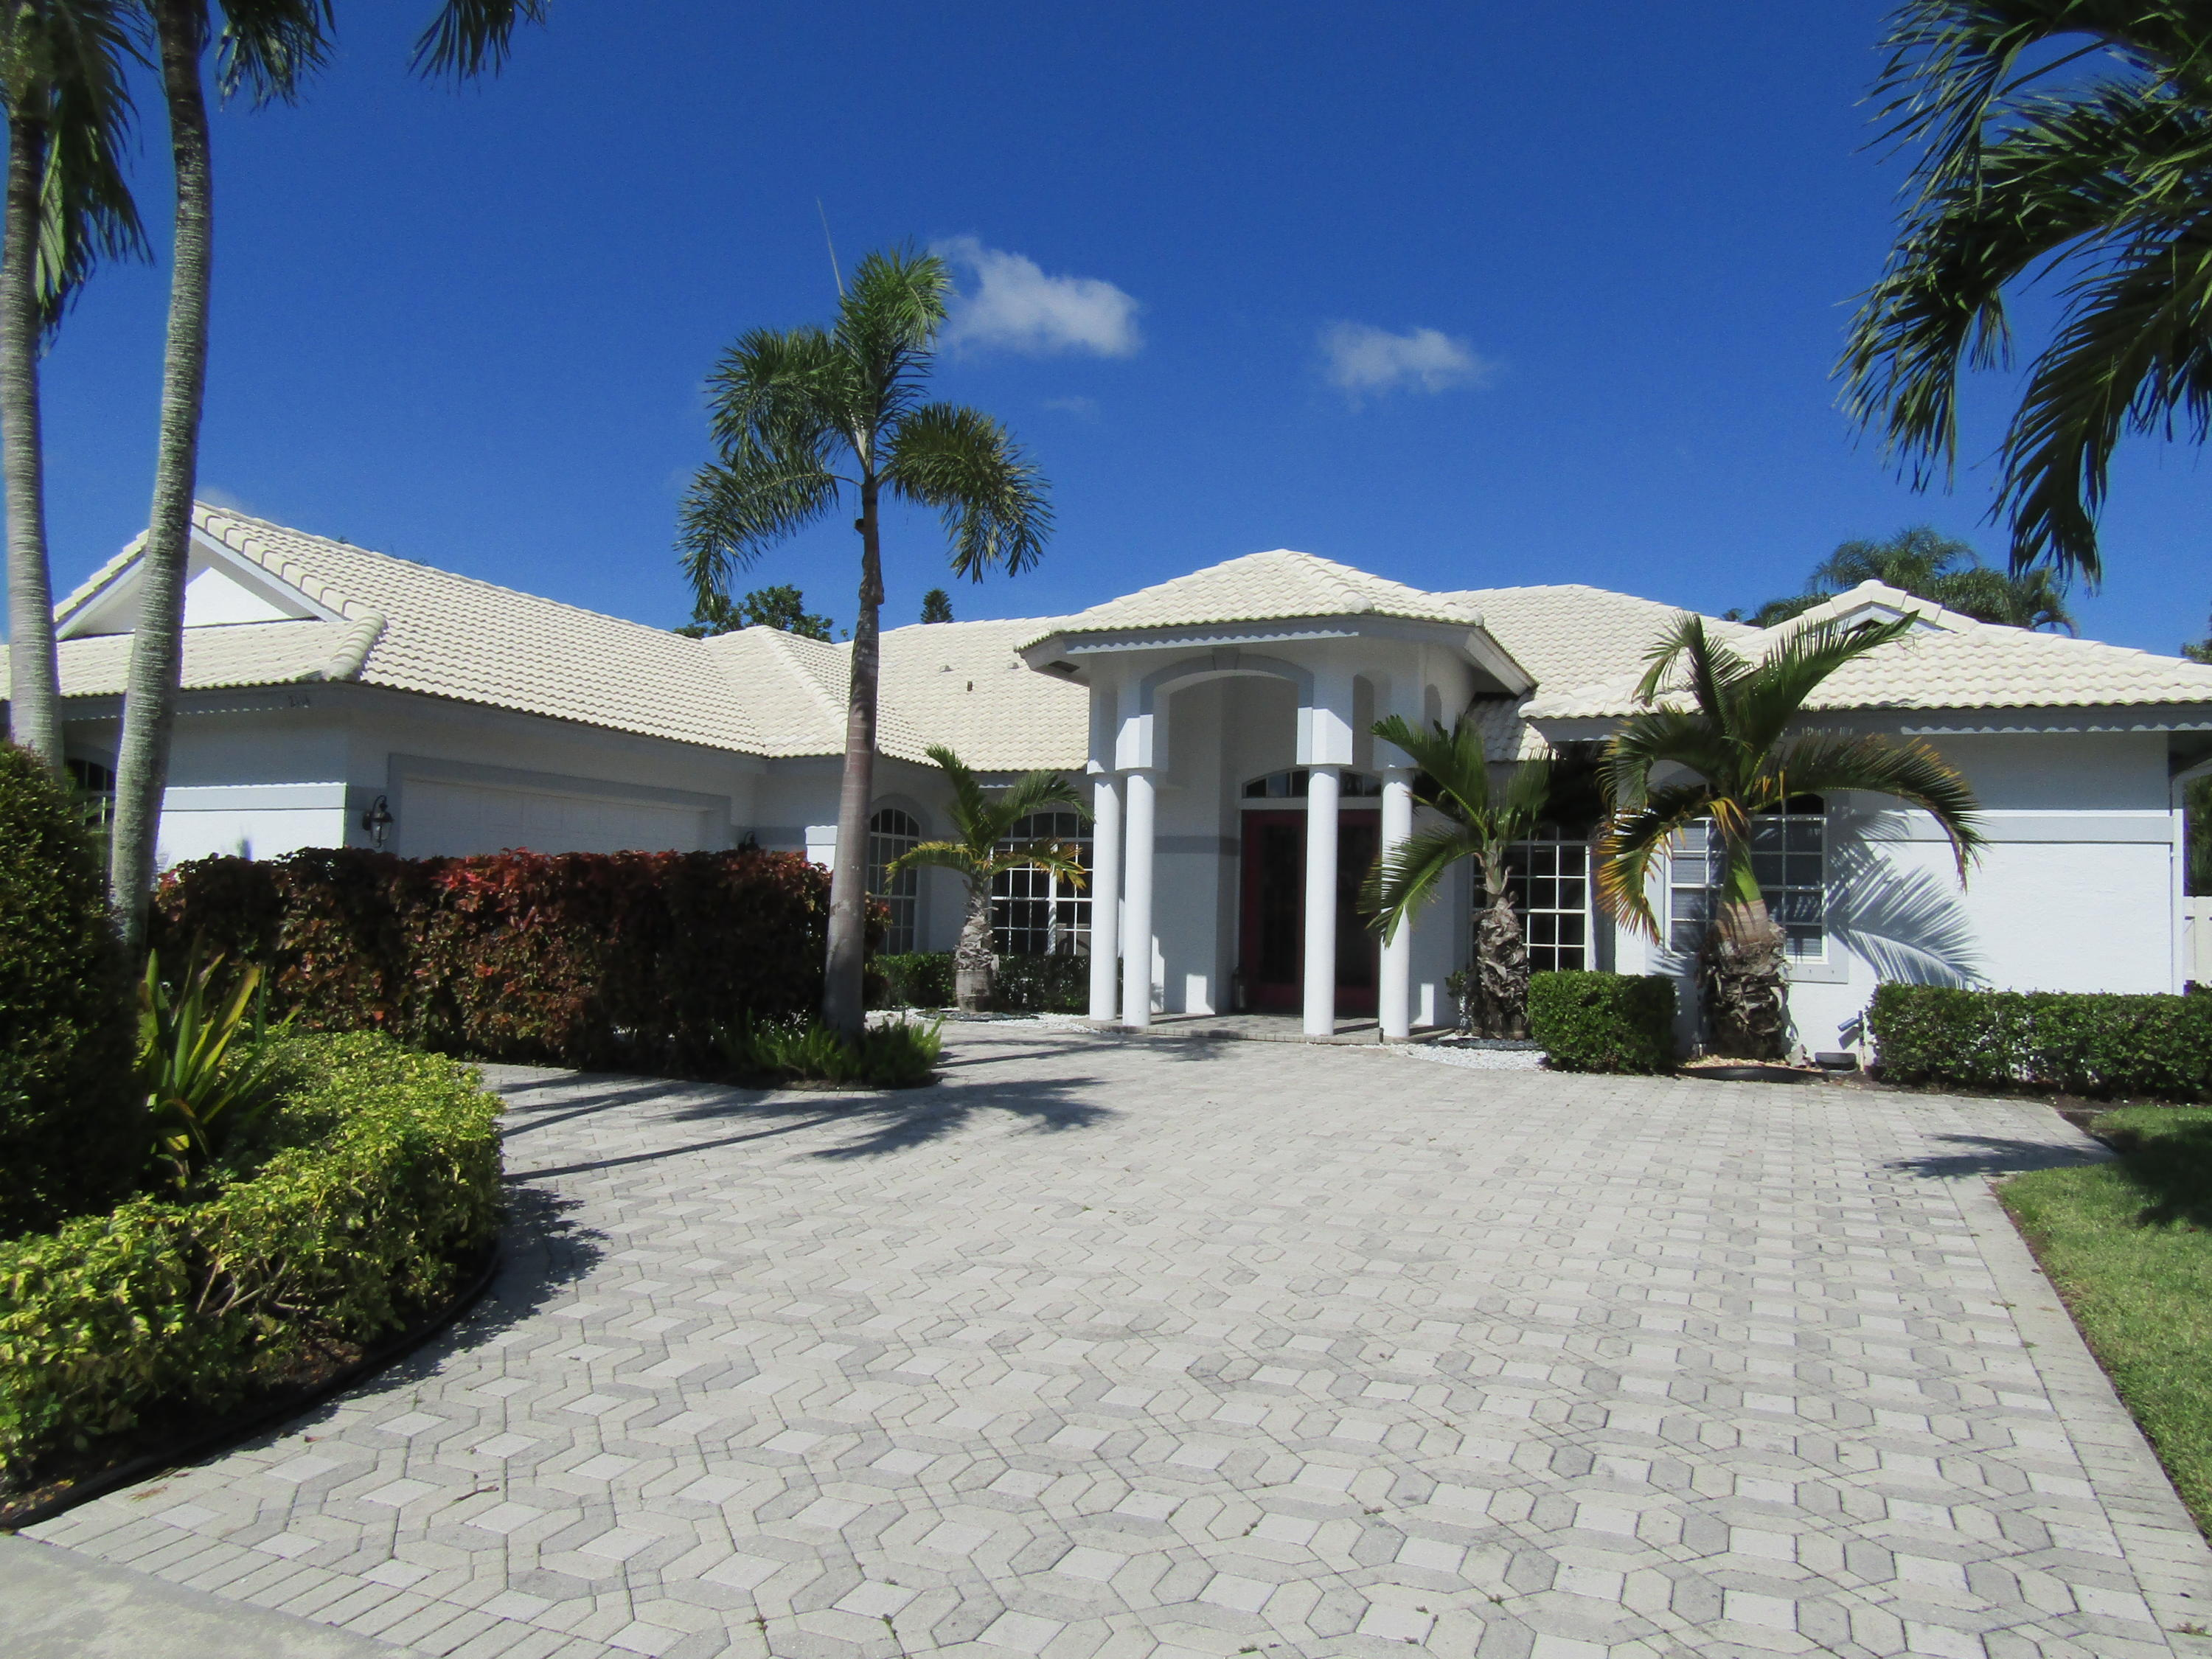 2114 Greenview Cove Drive, Wellington, Florida 33414, 6 Bedrooms Bedrooms, ,4.1 BathroomsBathrooms,Single Family,For Rent,Greenview Cove/Polo West Estates,Greenview Cove,RX-10558170